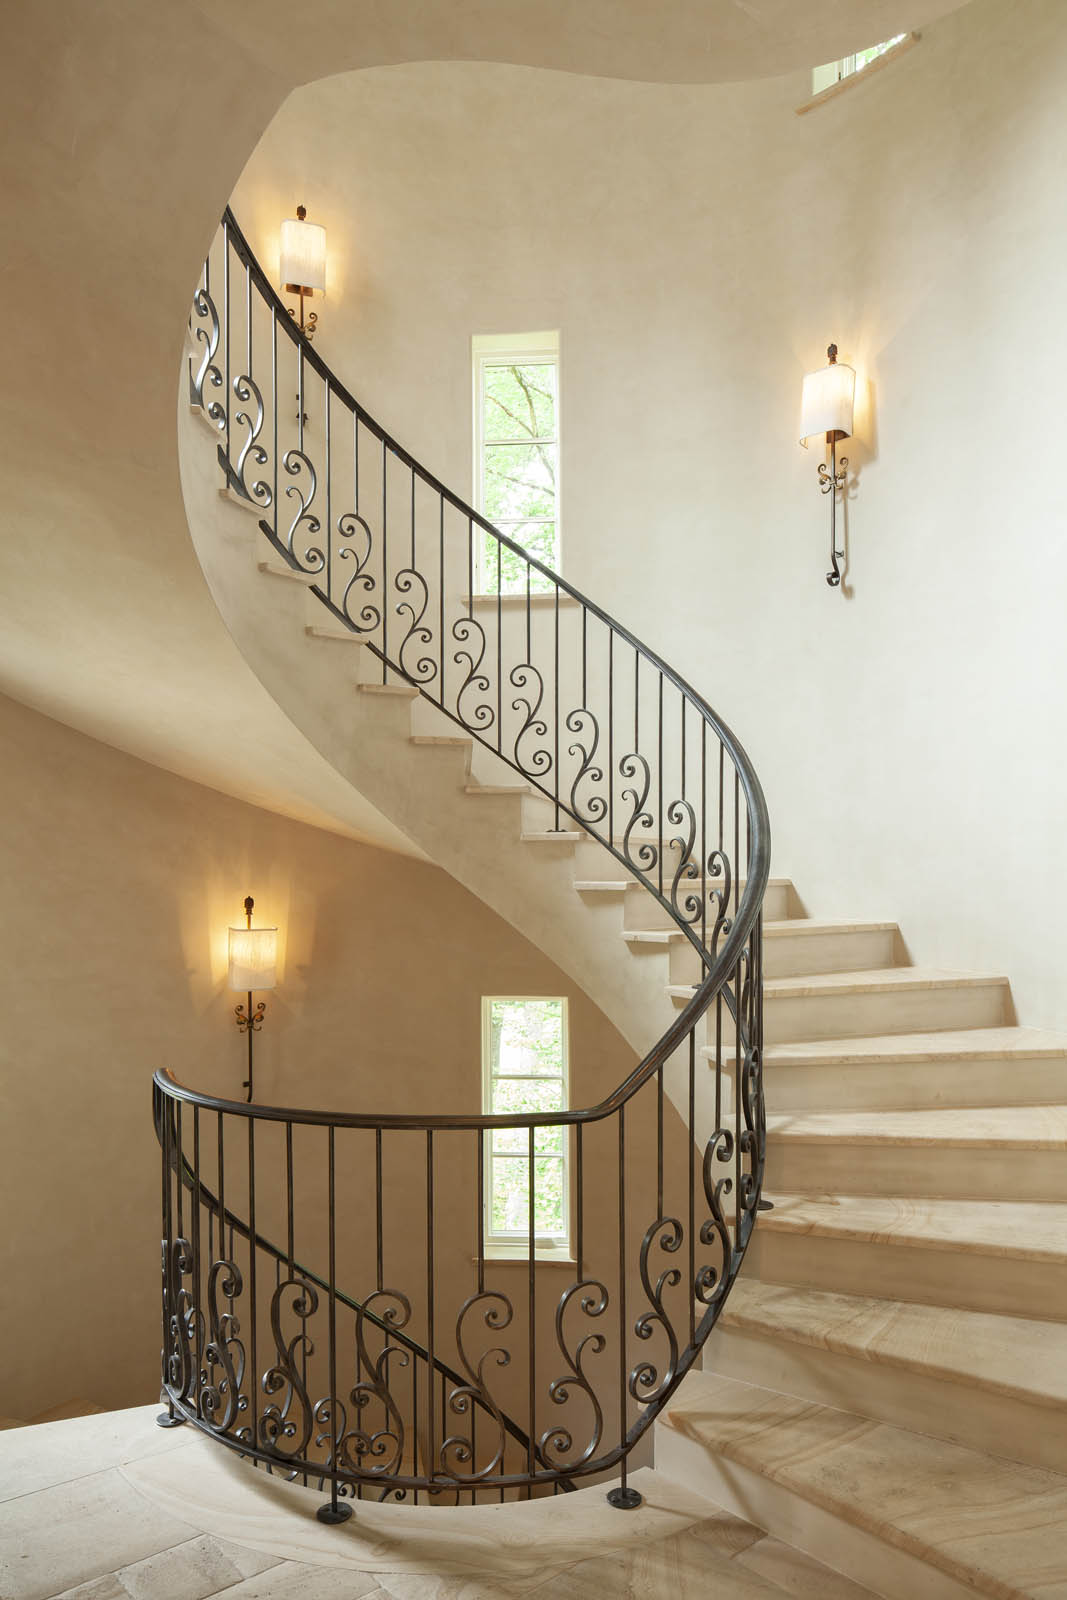 Windows in the turret illuminate staircase with wrought iron railing and decorative scrollwork by Harrison Design